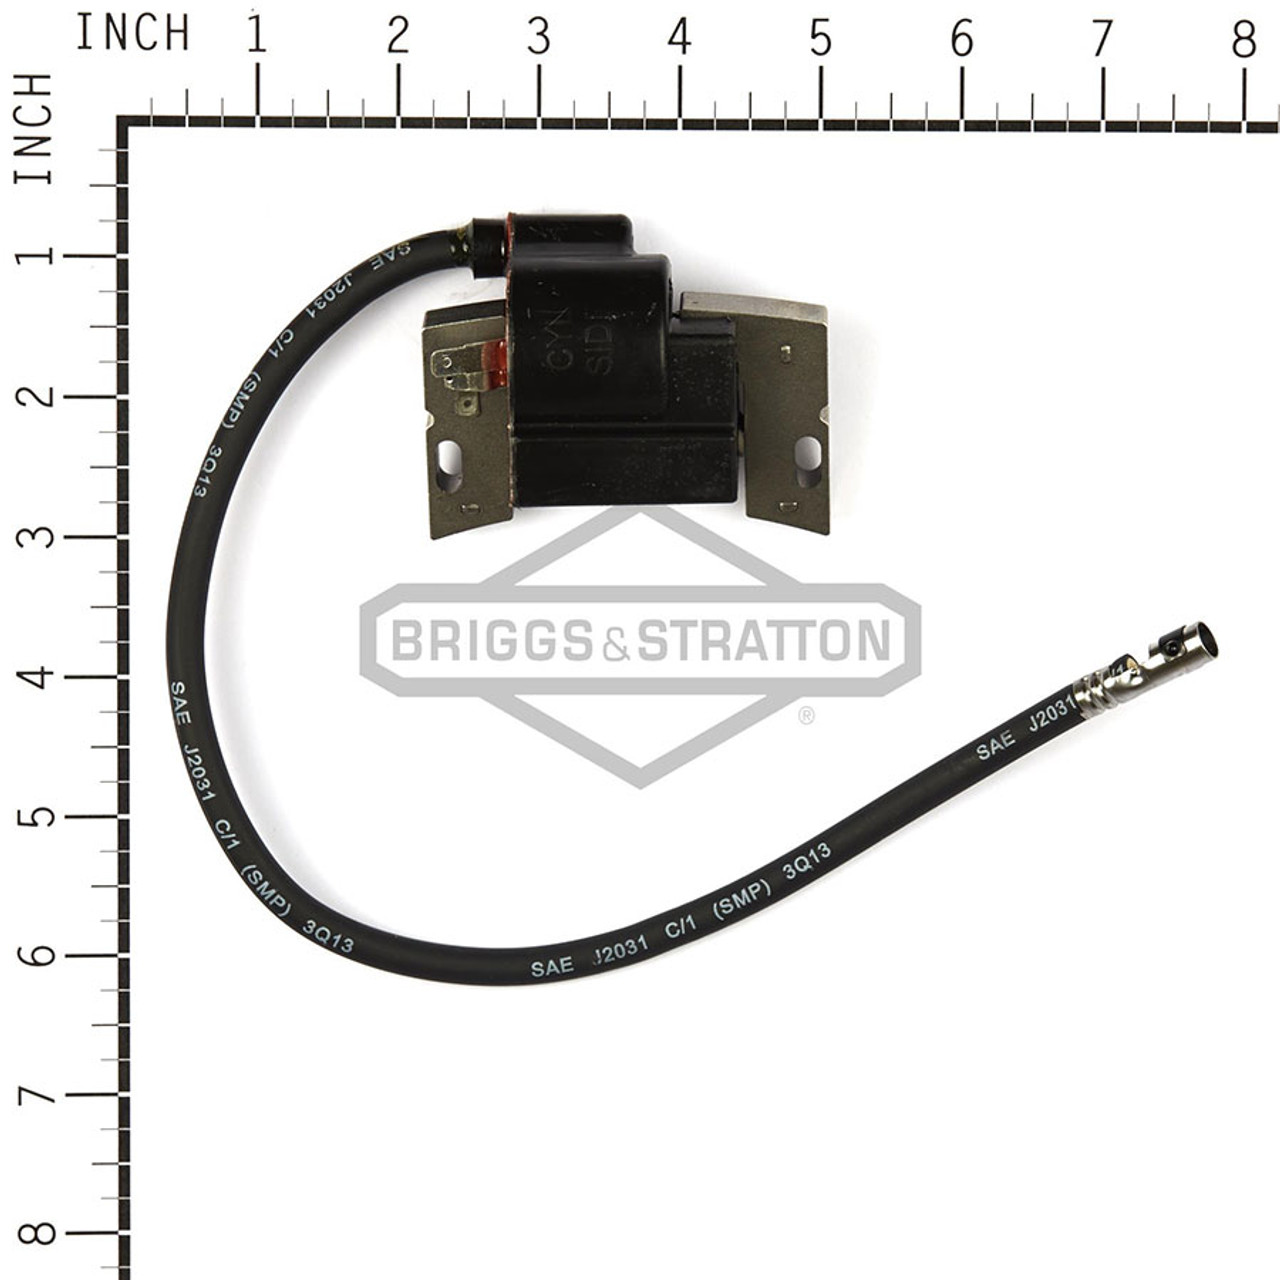 hight resolution of brigg stratton ignition system diagram